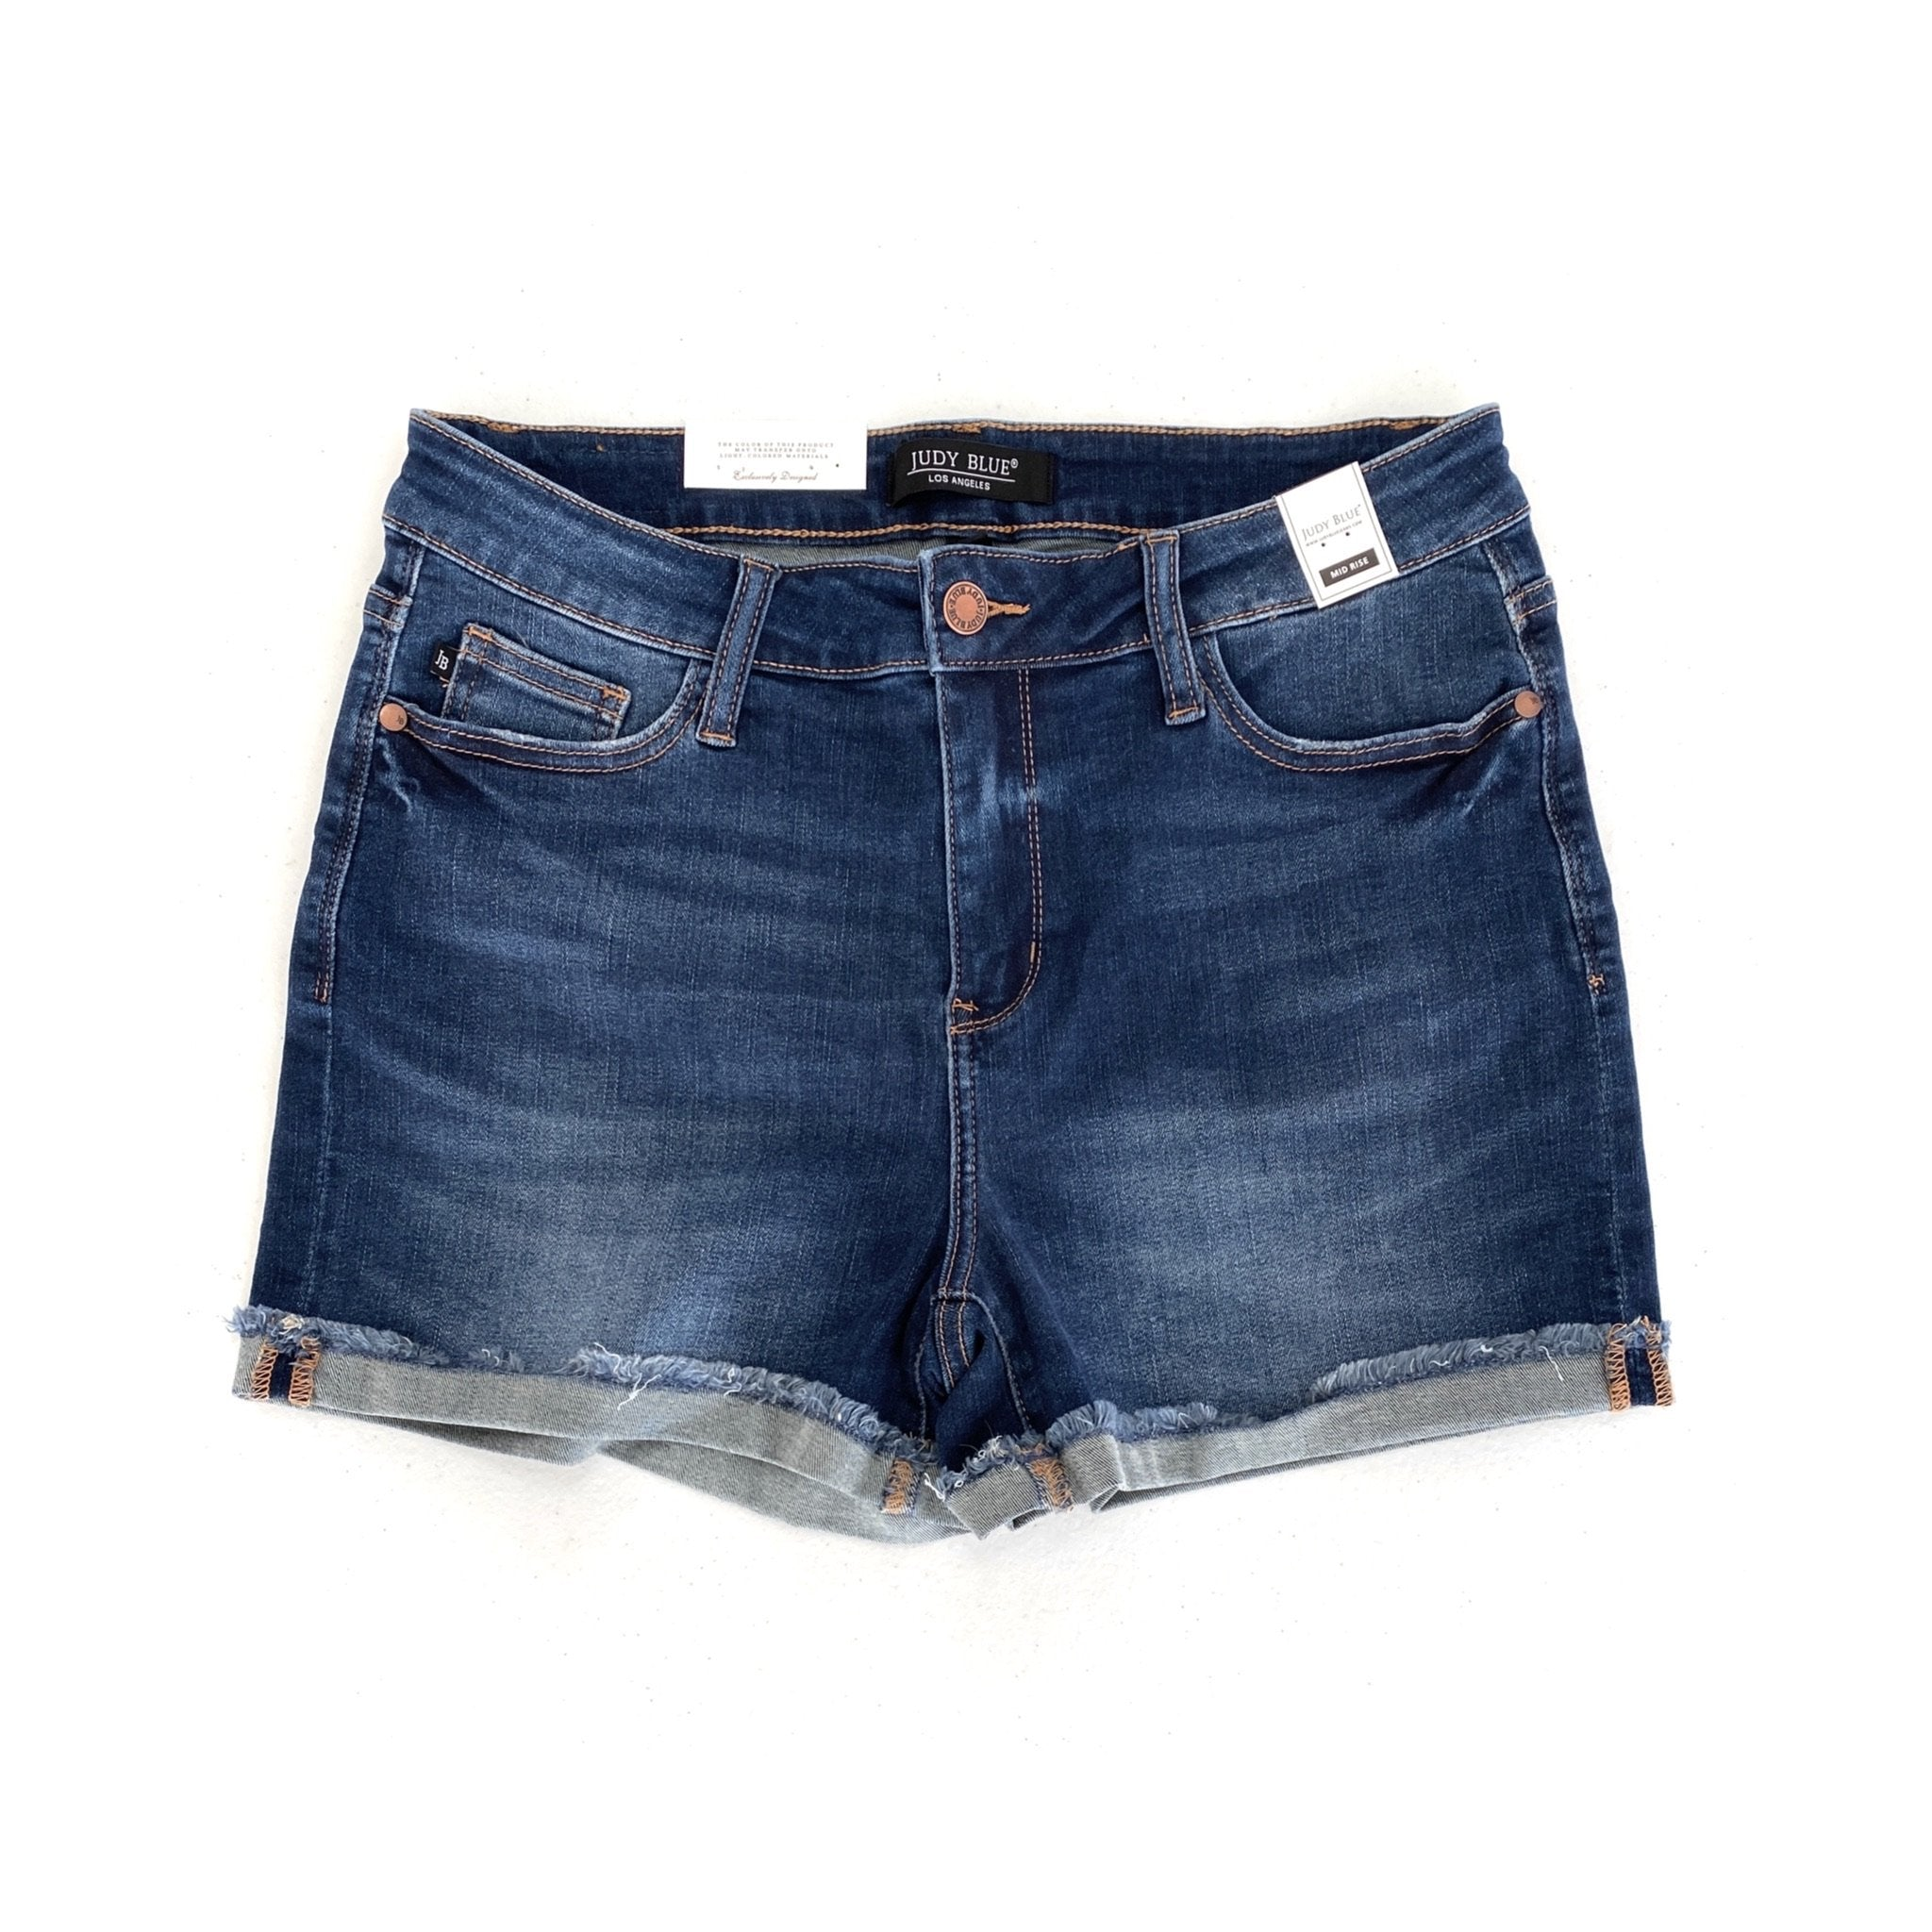 The Classic Judy Blue Shorts